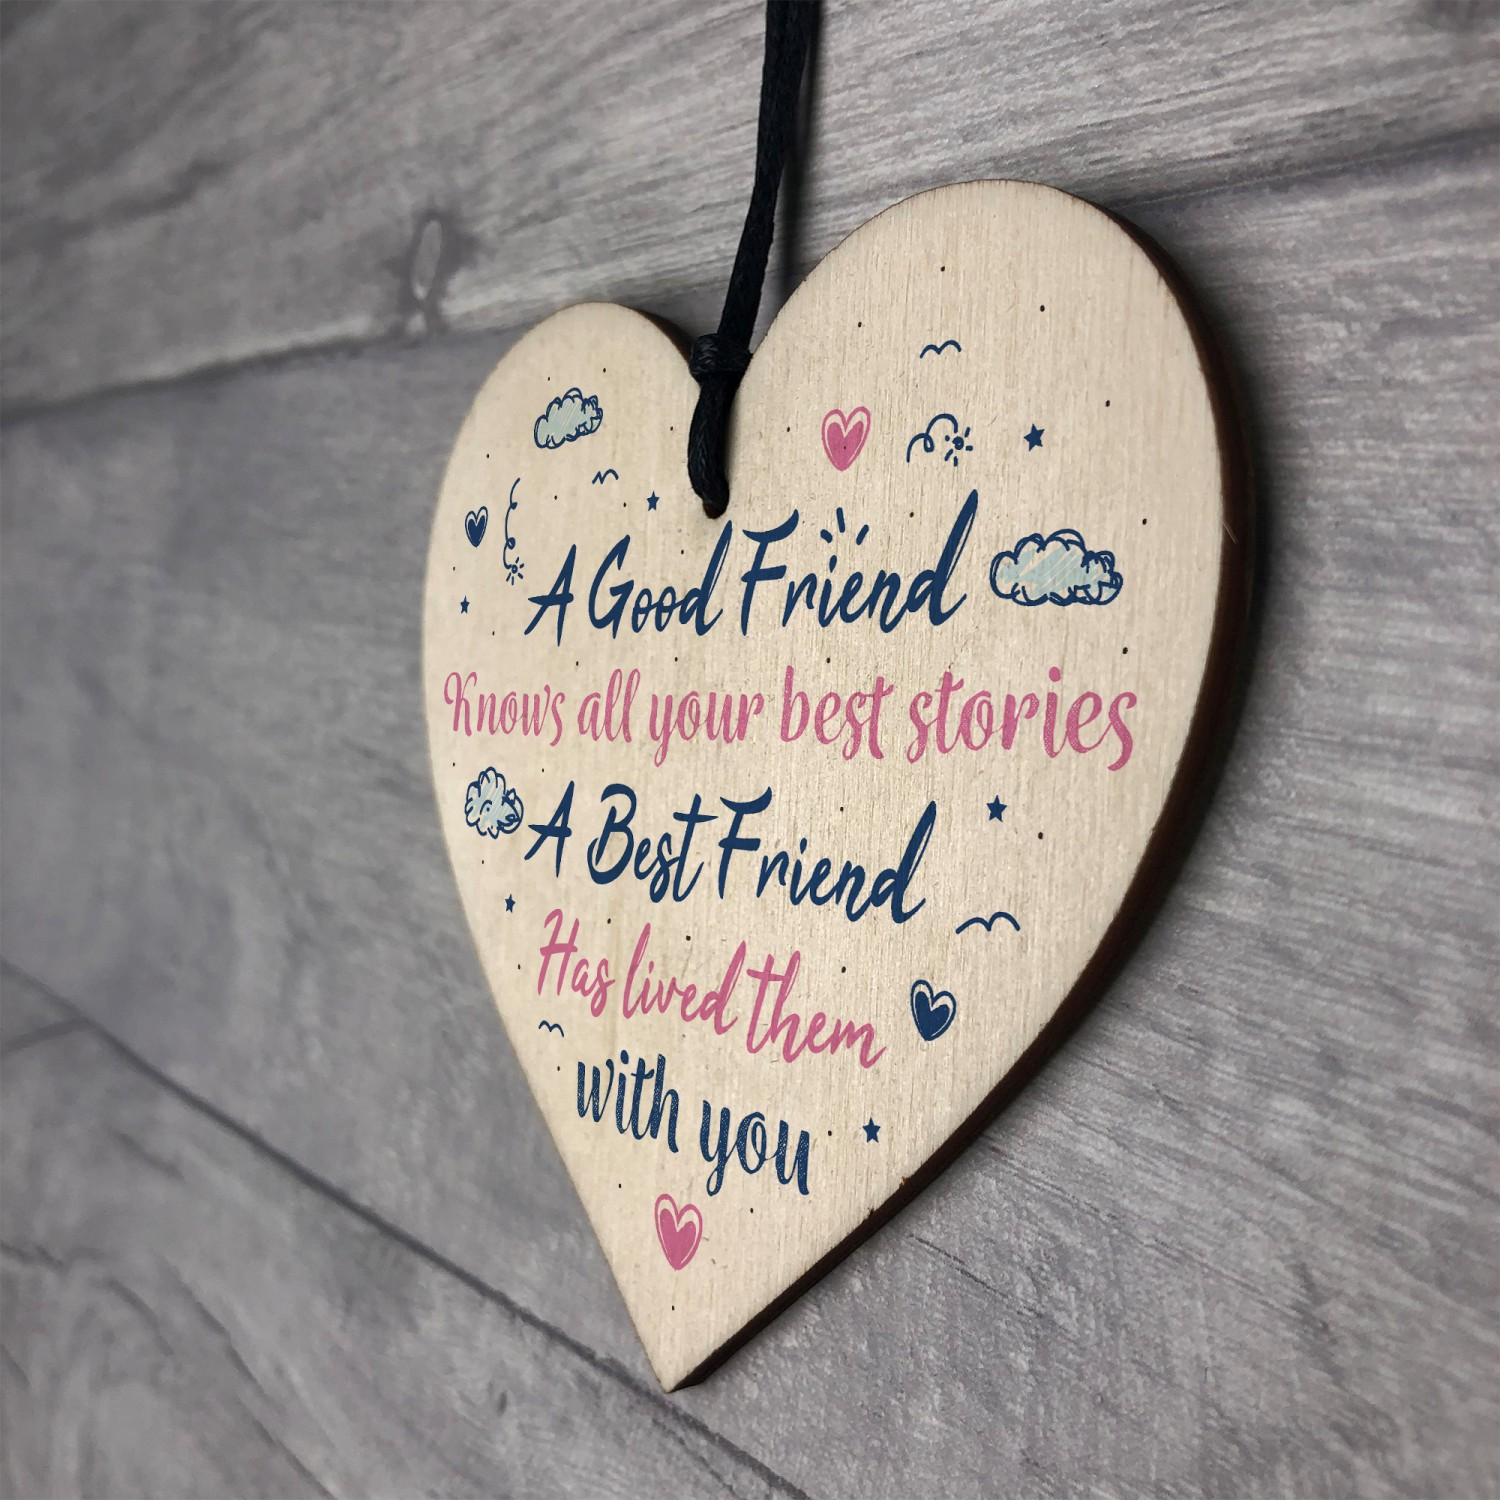 Best Friend Friendship Birthday Gift Handmade Wood Heart Plaque